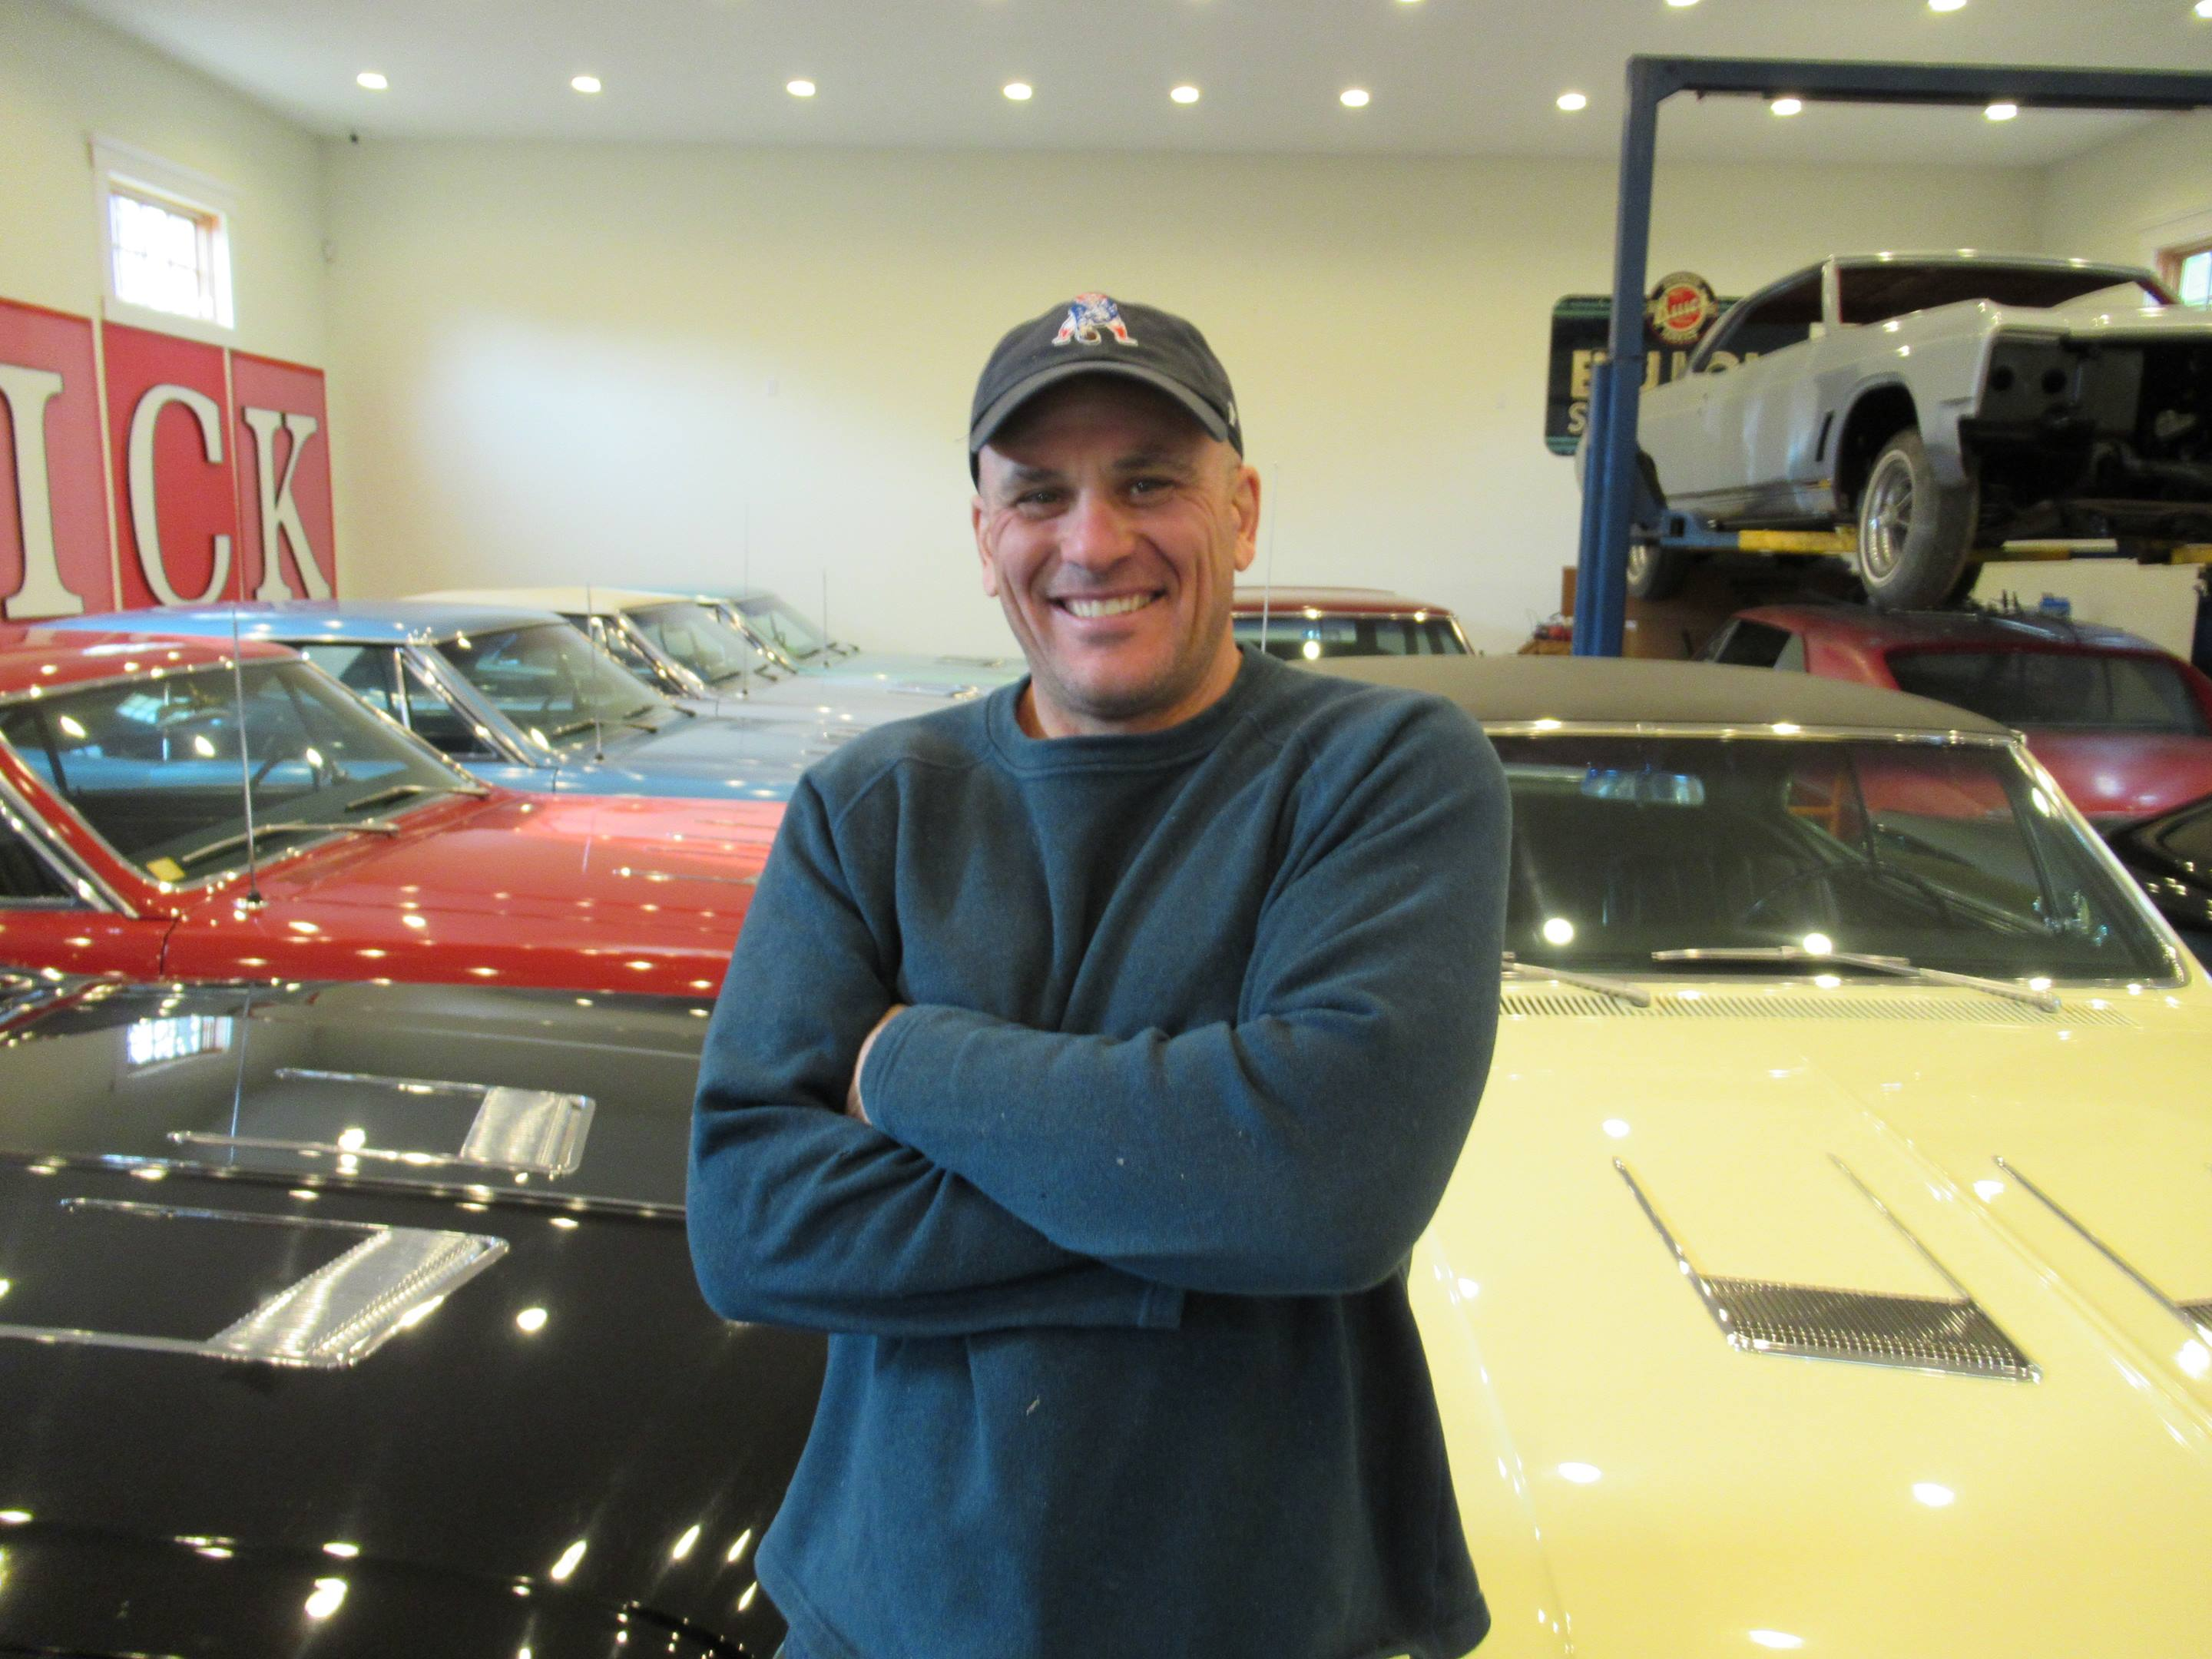 Jimmy Shiels with his 1966 Buick Skylark GS collection